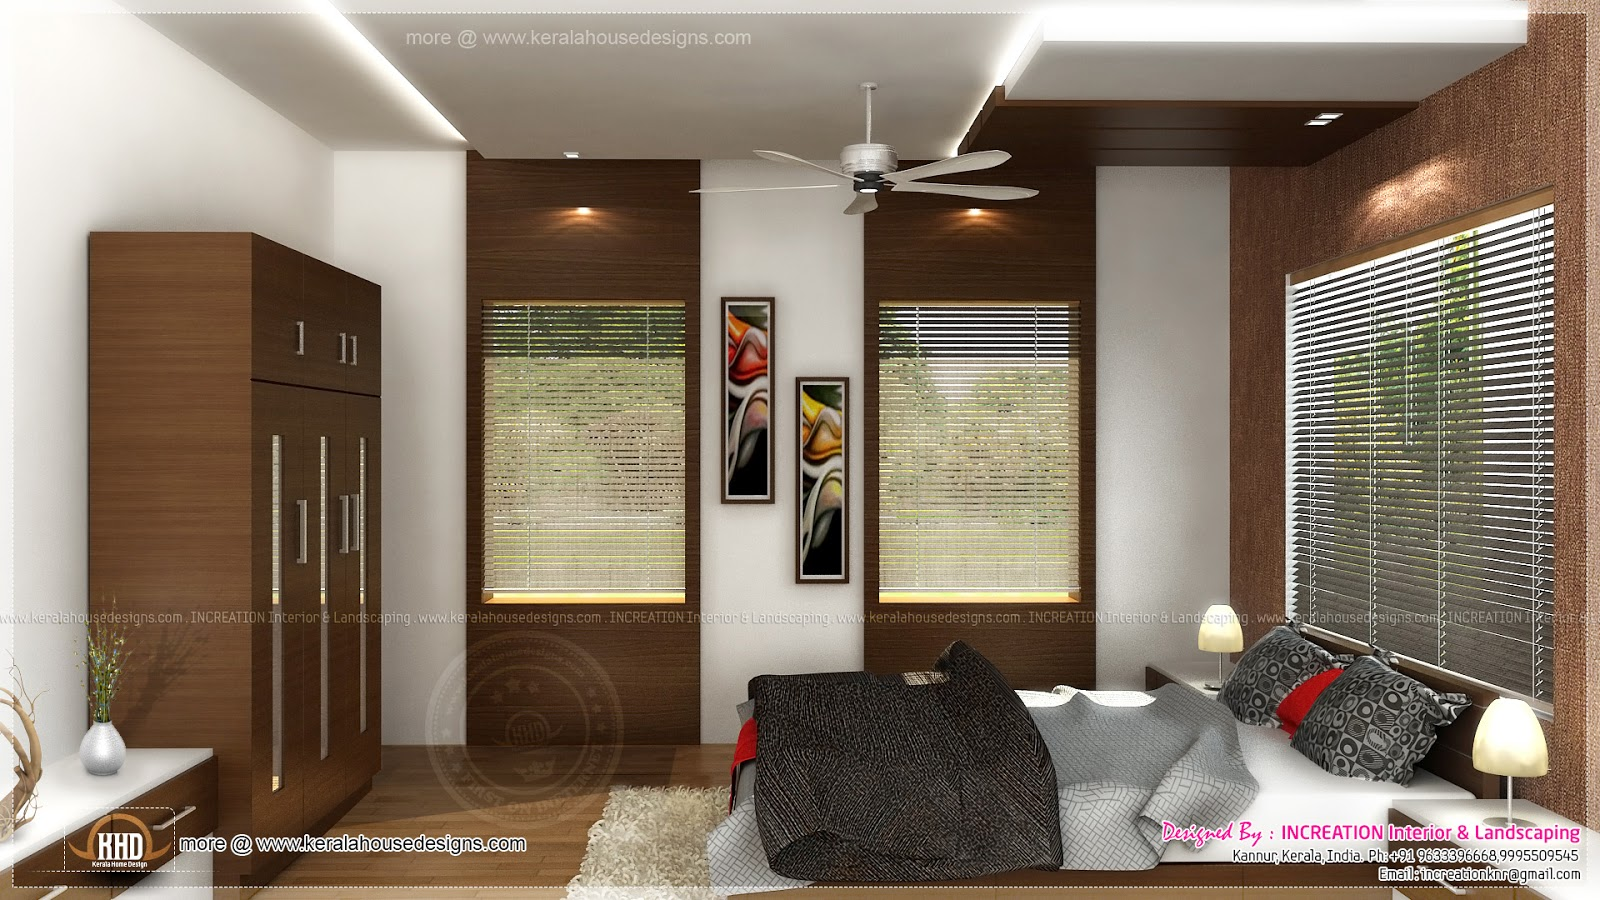 Interior Designs From Kannur, Kerala   Kerala Home Design And